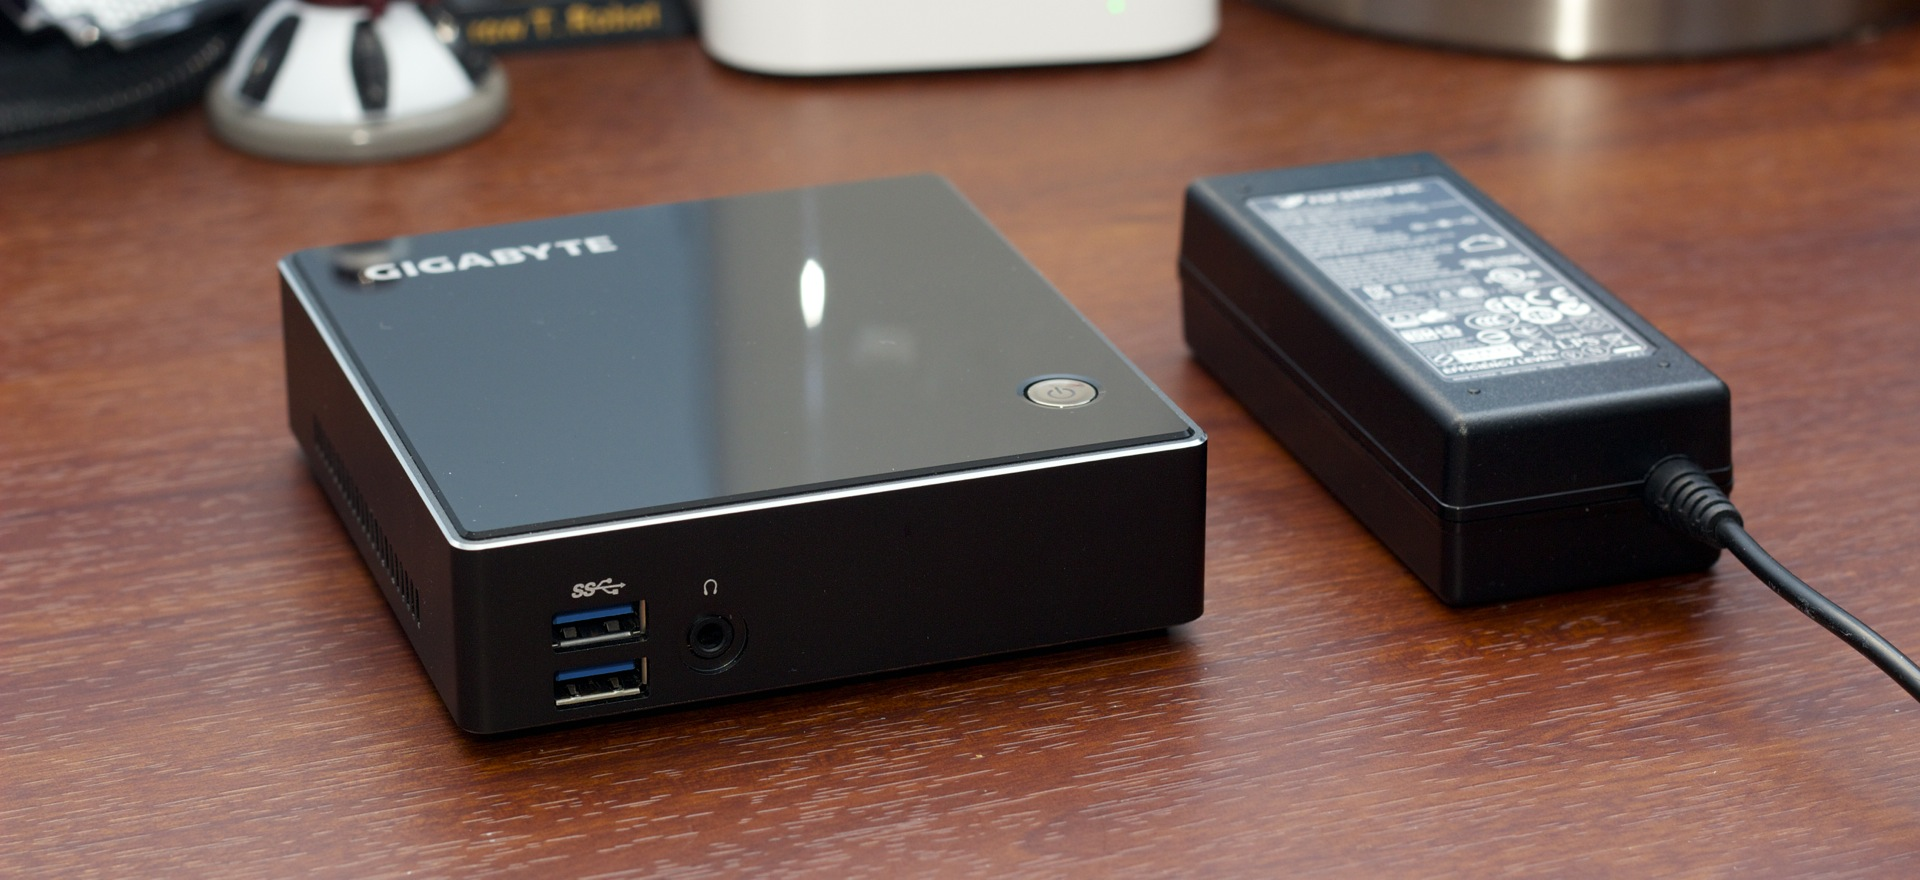 Like most other mini PCs, the Brix is a tiny box with a small external power supply.